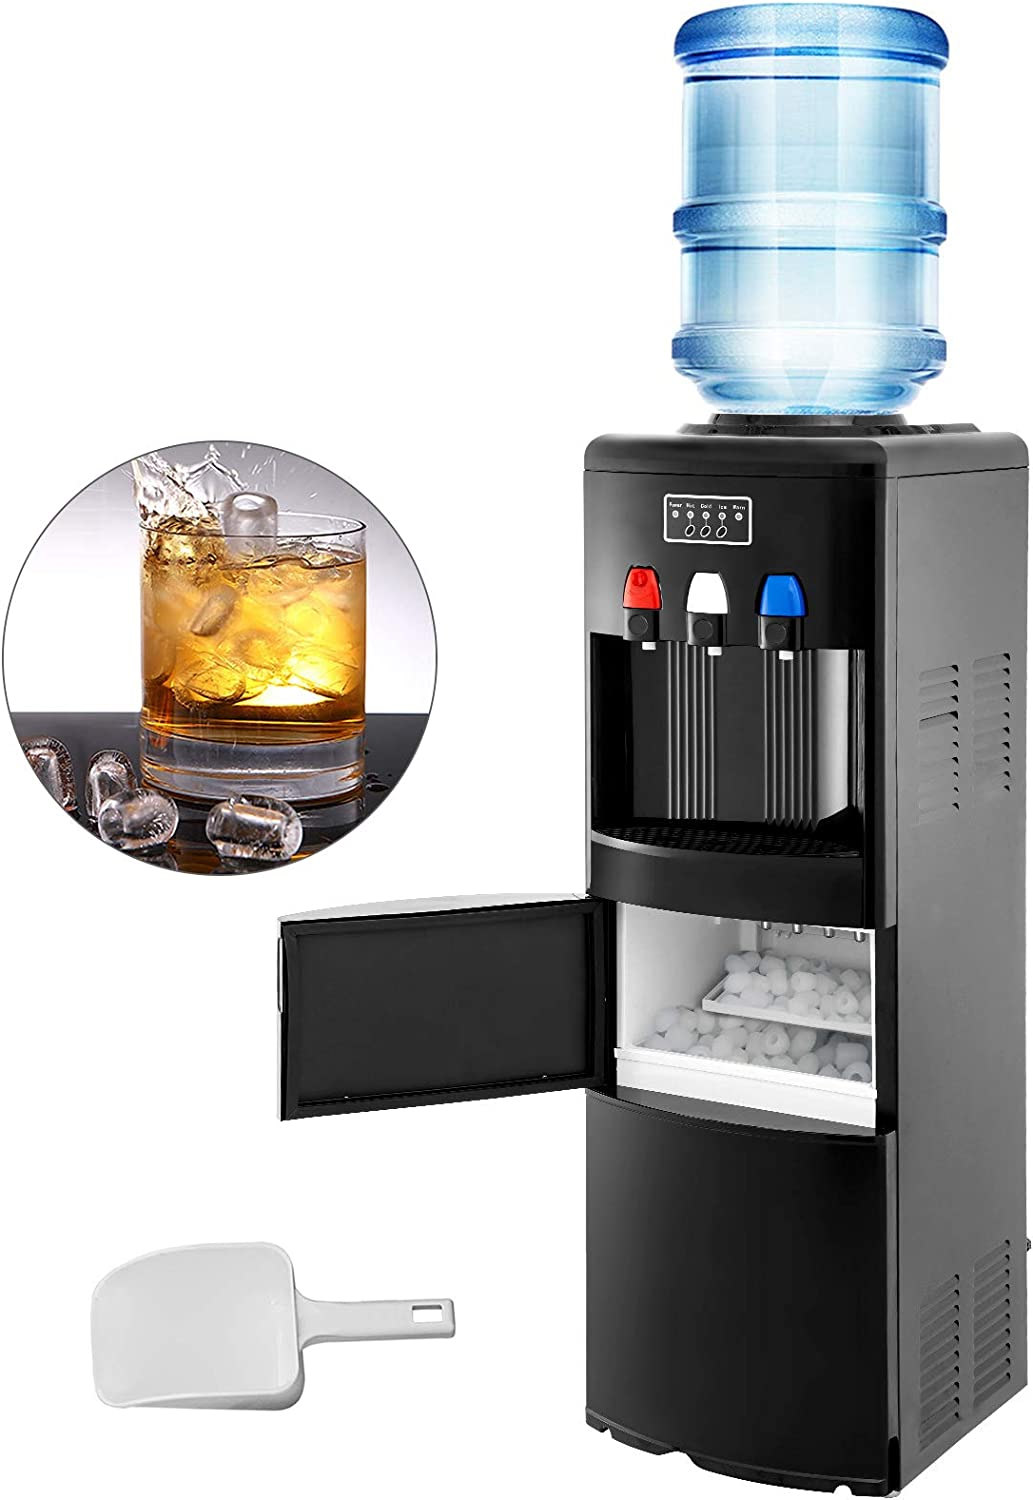 VBENLEM 2 in 1Water Cooler Dispenser with Built in Ice Maker Machine Hot and Cold Top Loading 3 to 5 Gallon Bottle Electric Hot Cold Water Cooler Dispenser Black